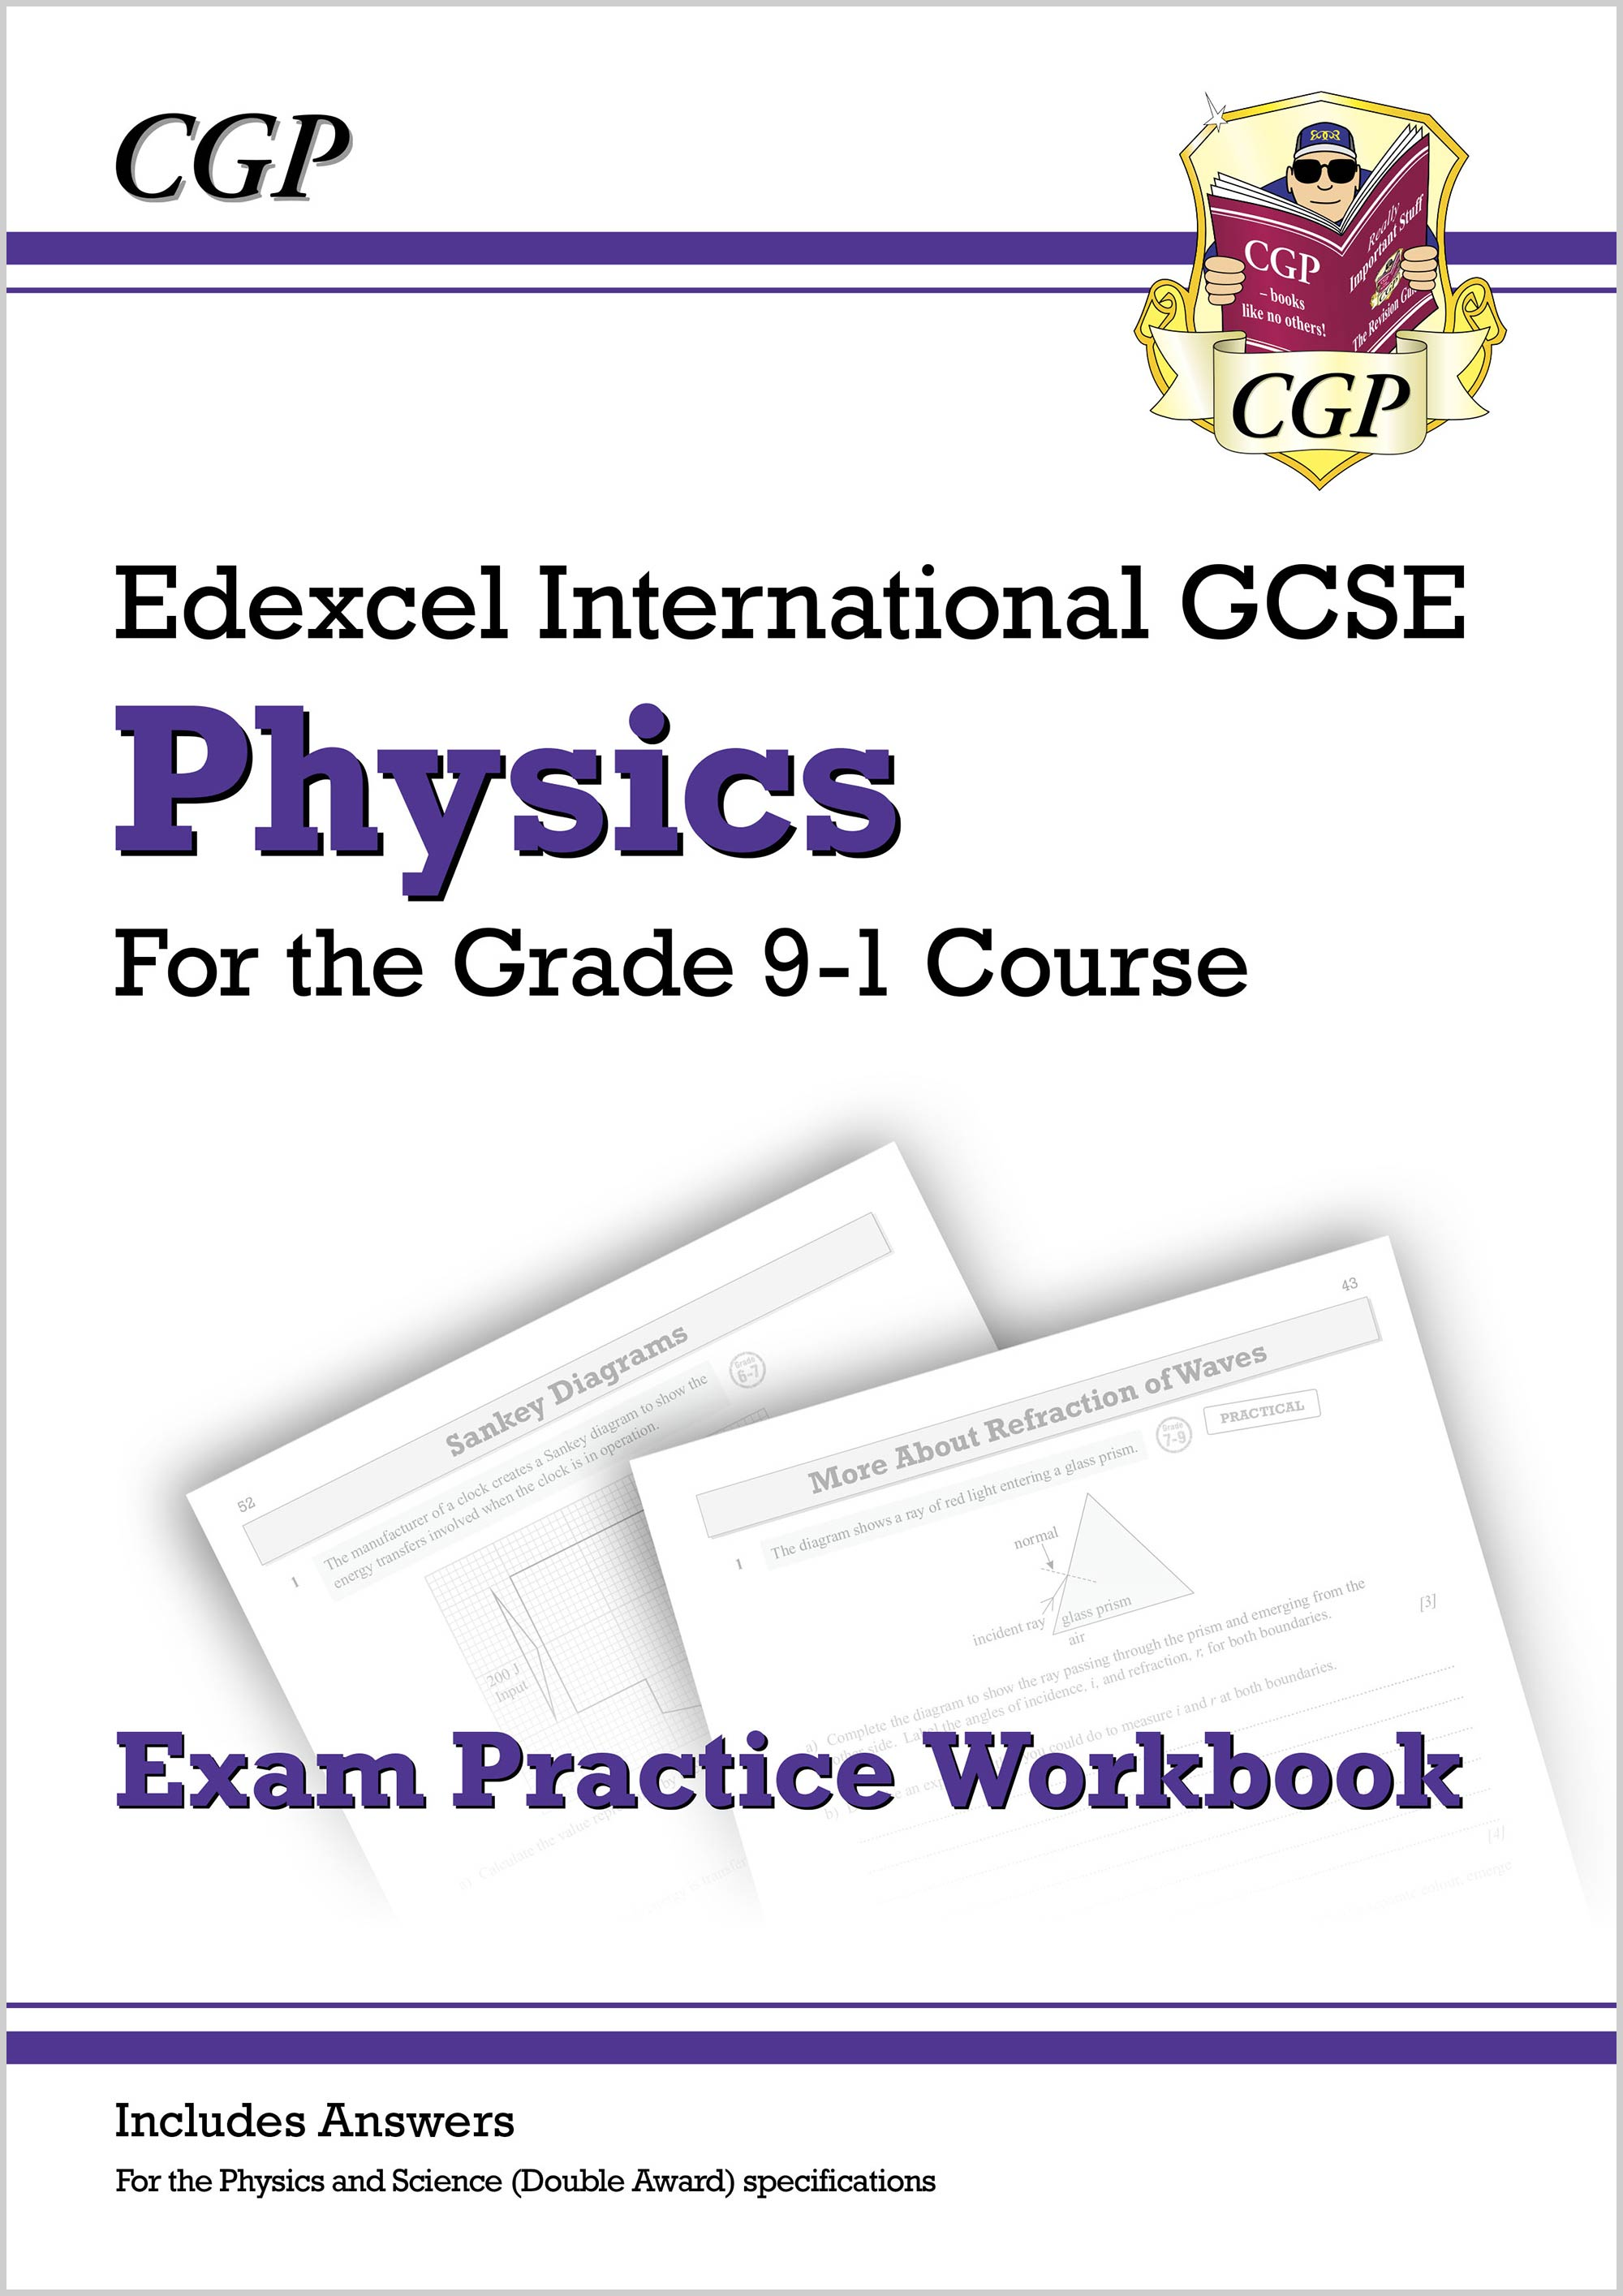 PEQI42DK - New Grade 9-1 Edexcel International GCSE Physics: Exam Practice Workbook (includes Answer